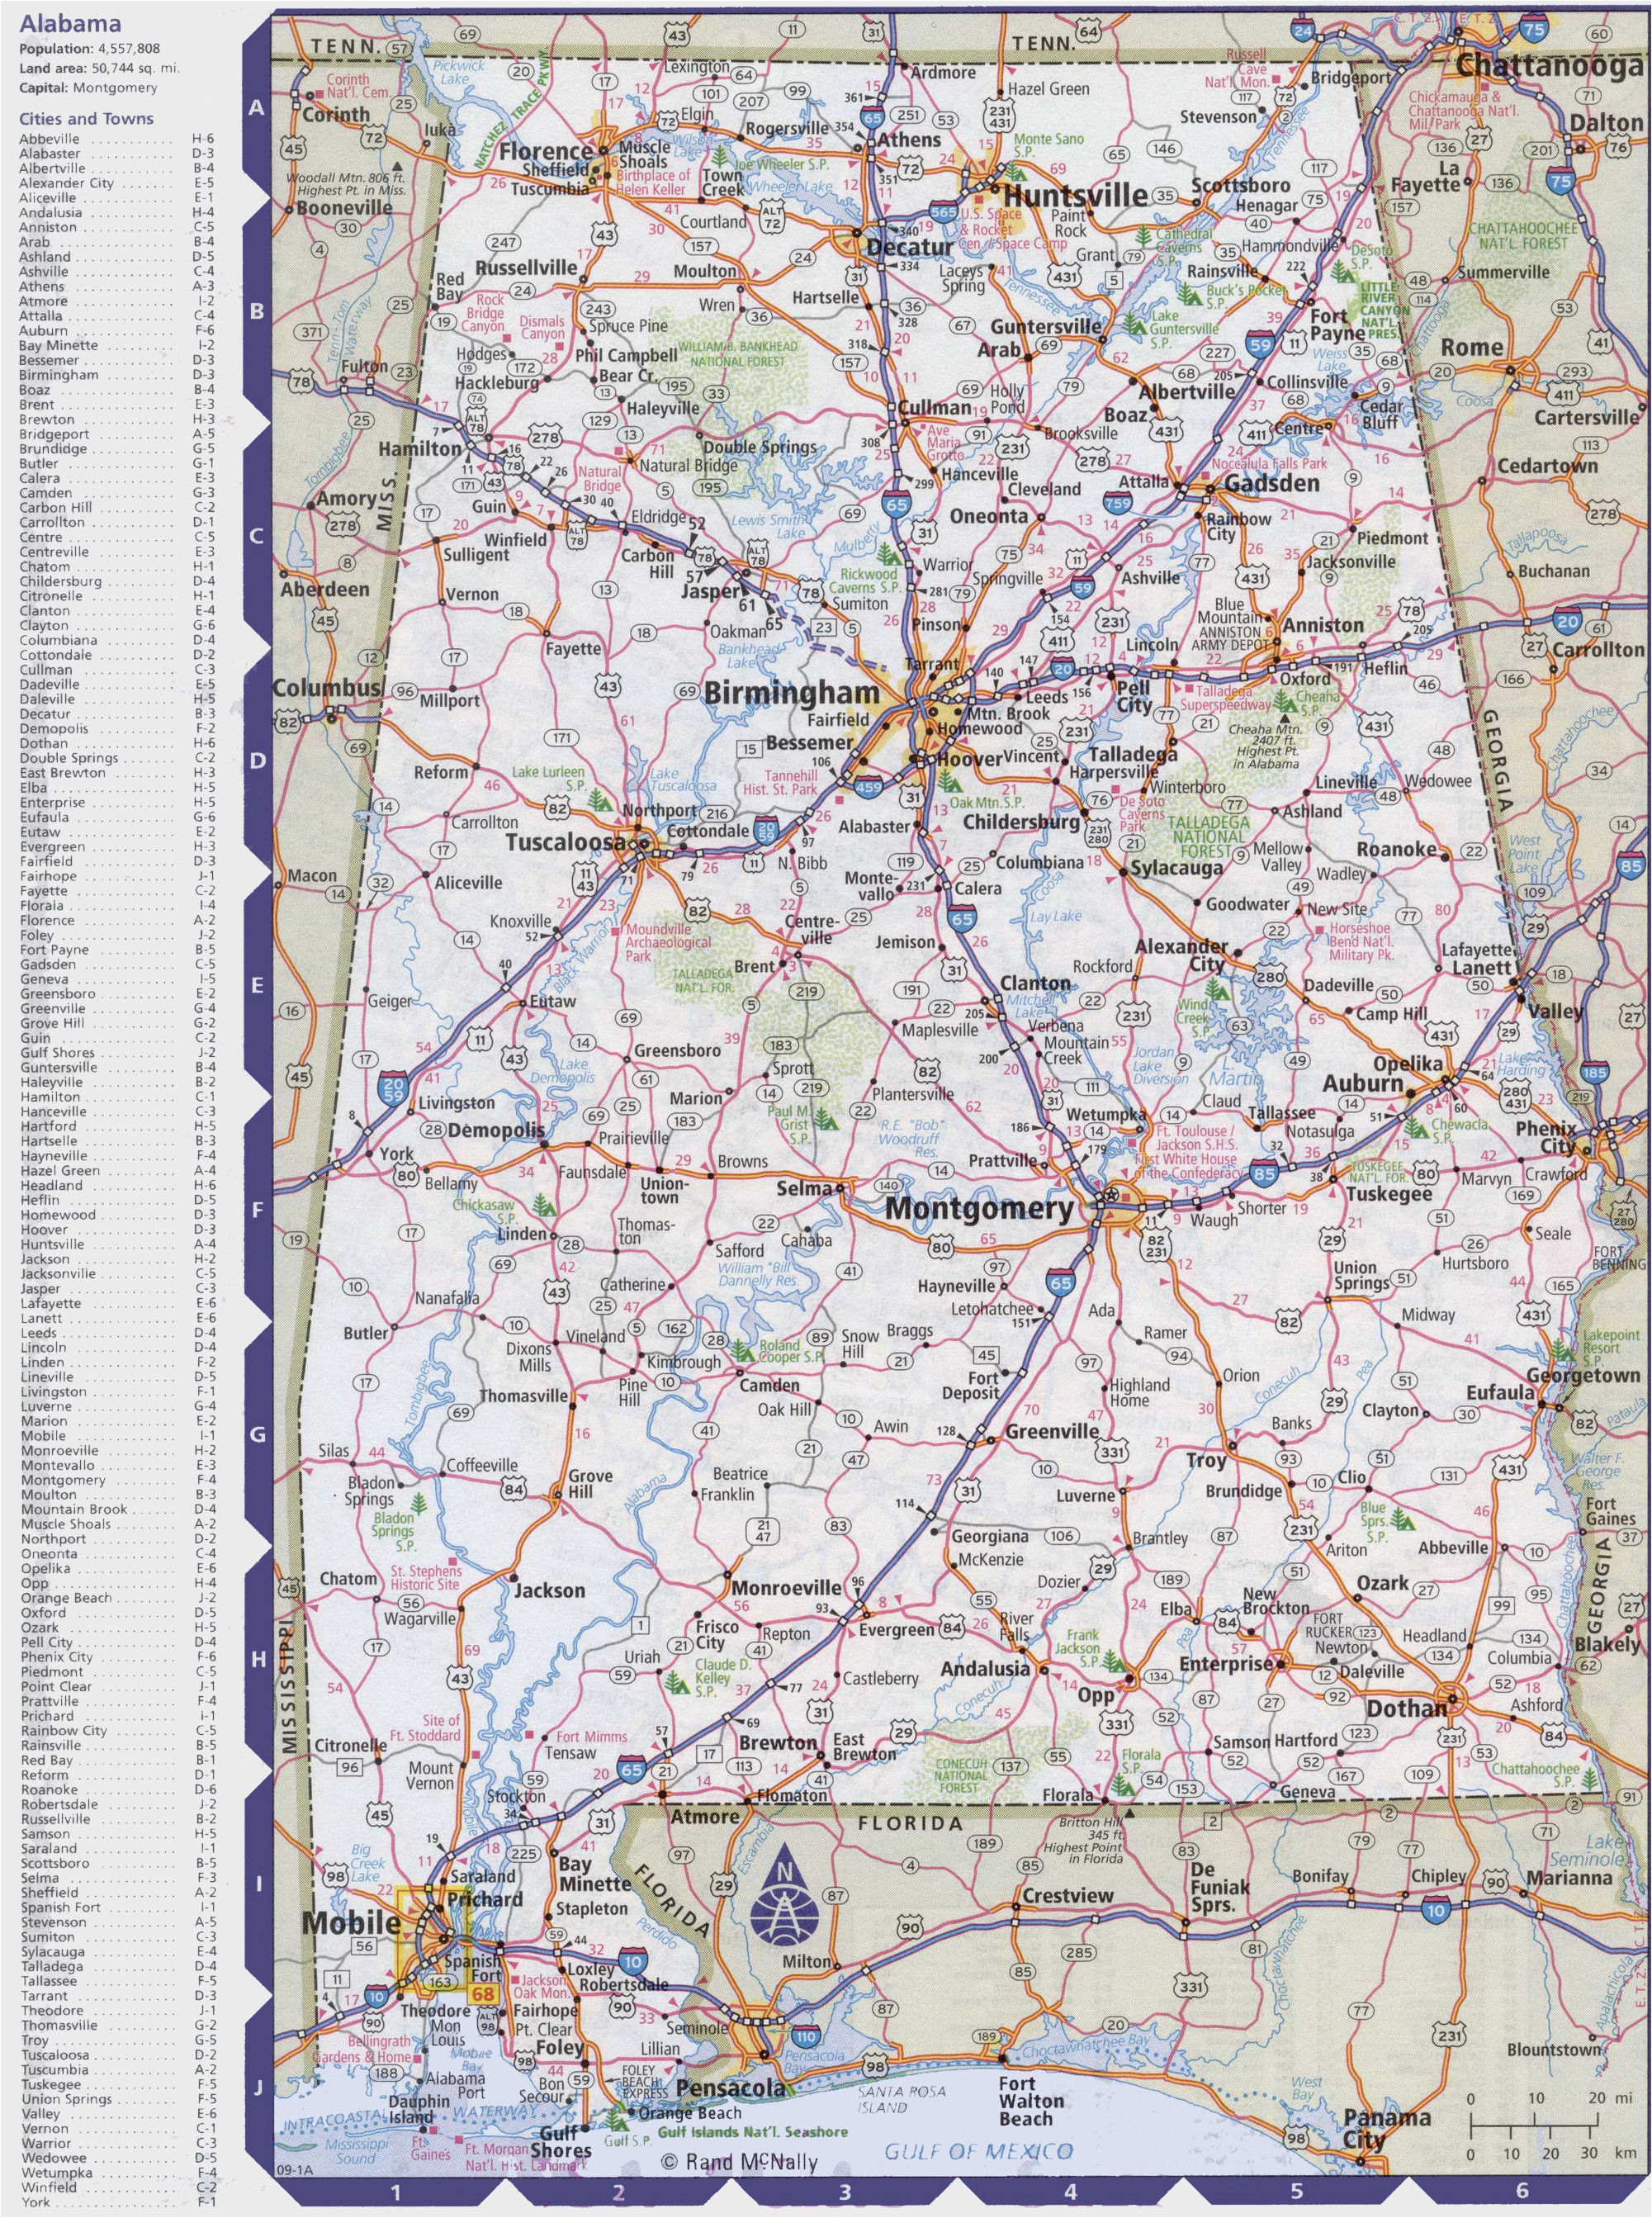 map of alabama with cities and towns